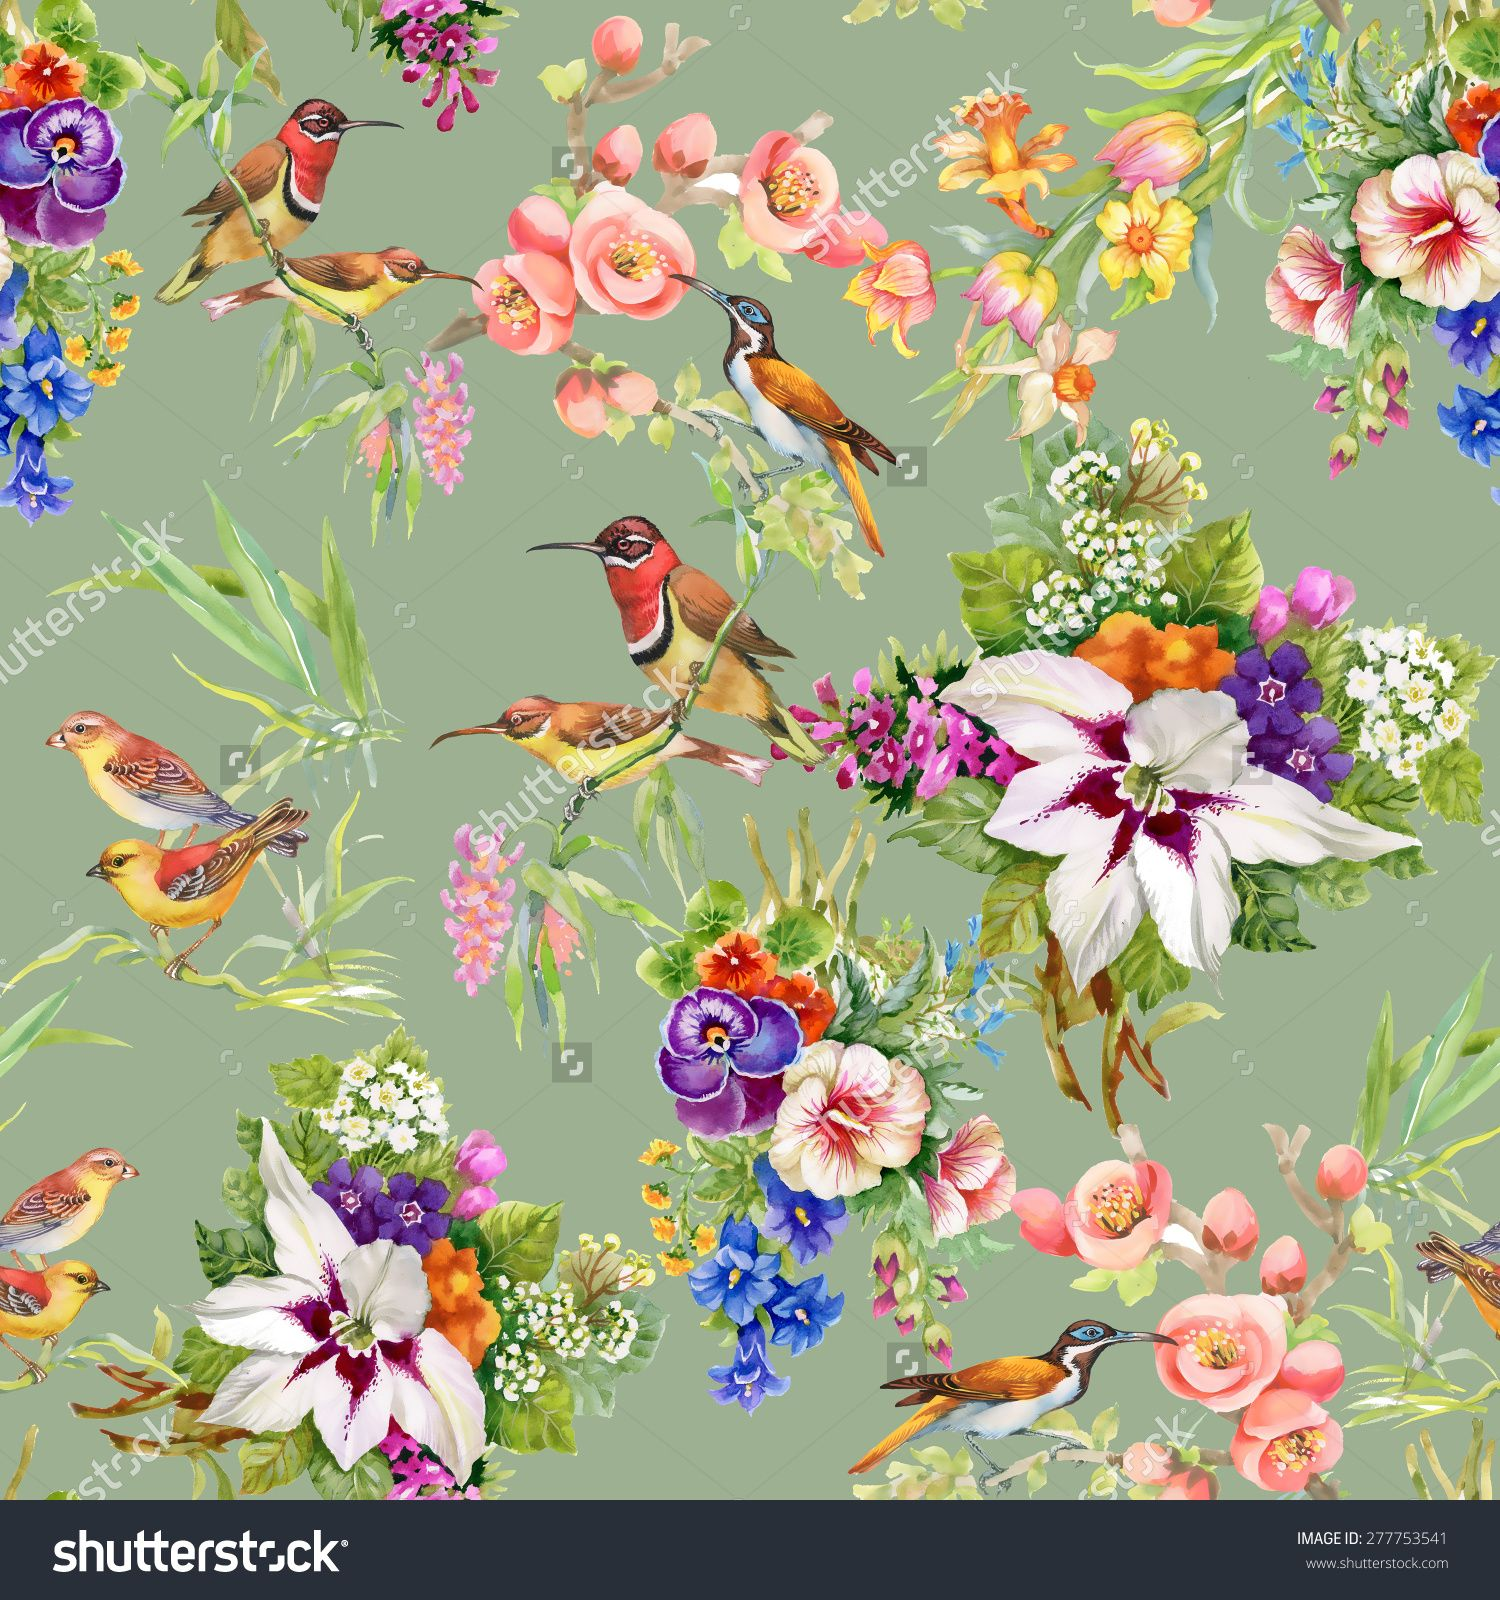 Watercolor Wild Exotic Birds On Flowers Seamless Pattern On Green